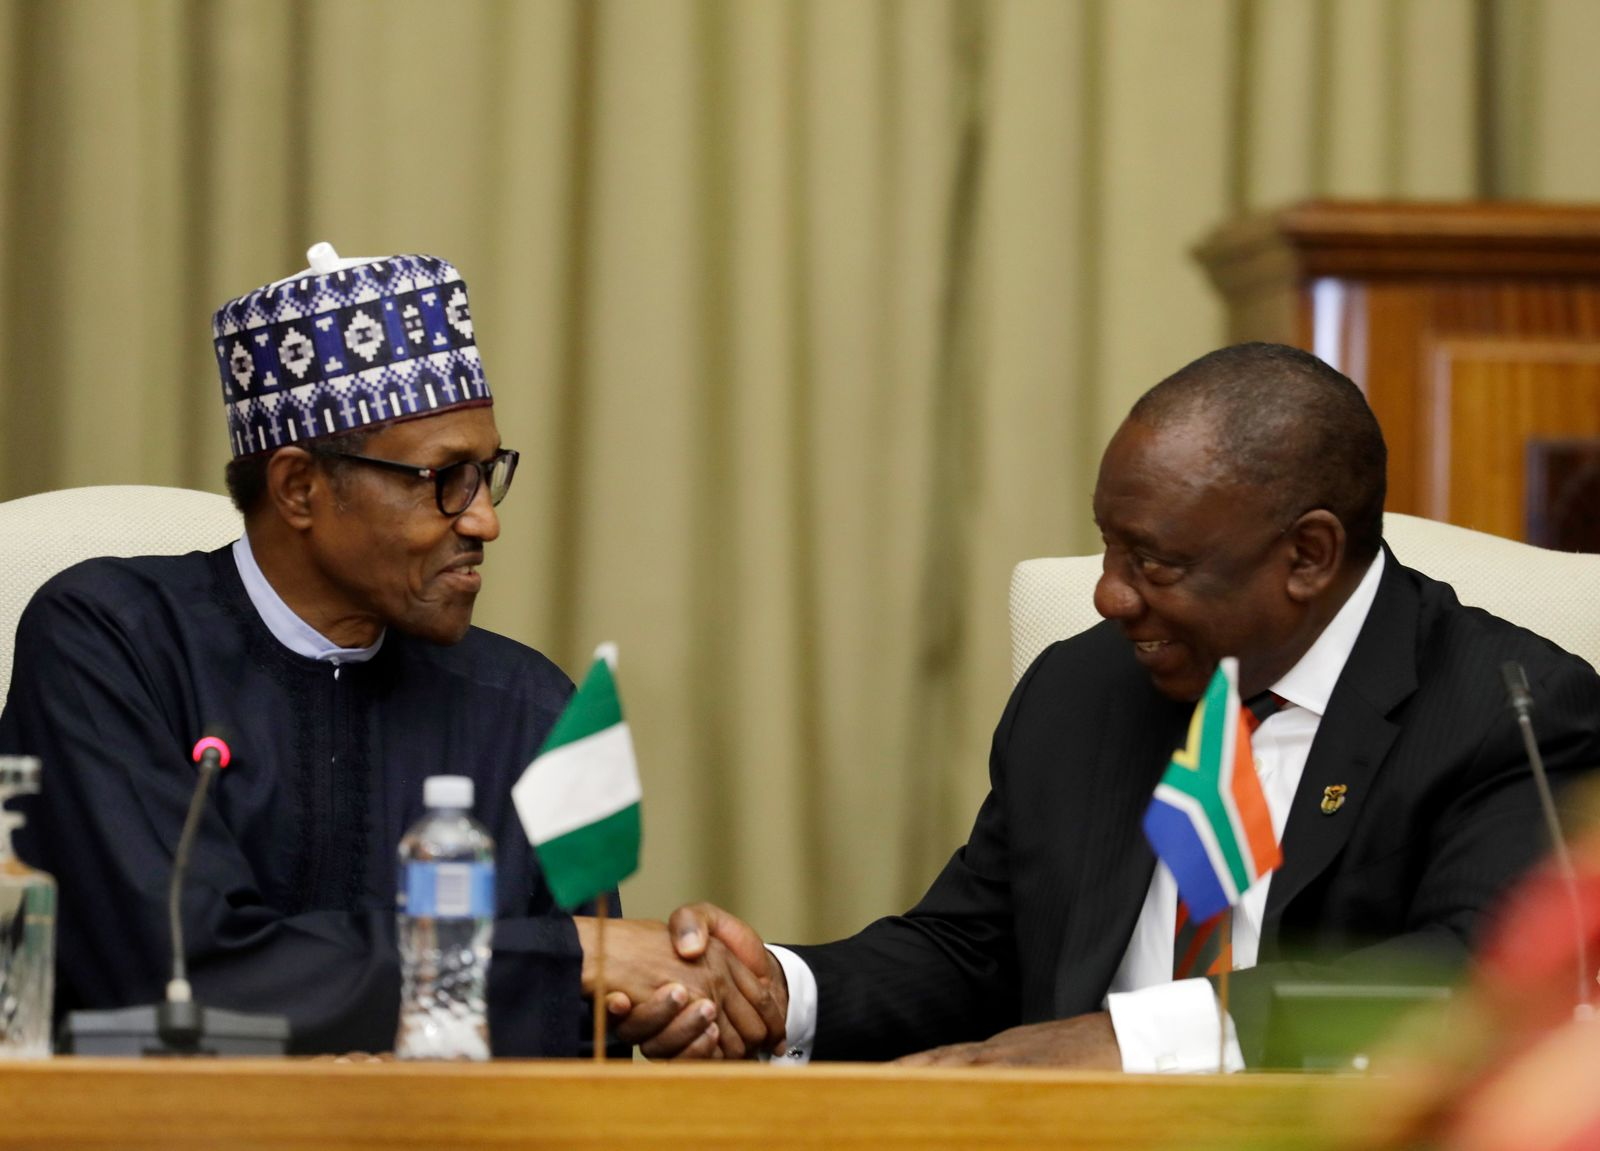 Nigerian President Muhammadu Buhari, left, and South Africa's President, Cyril Ramaphosa, shake hands as they meet after a welcoming ceremony in Pretoria, South Africa Thursday, Oct. 3, 2019.(AP Photo/Themba Hadebe)